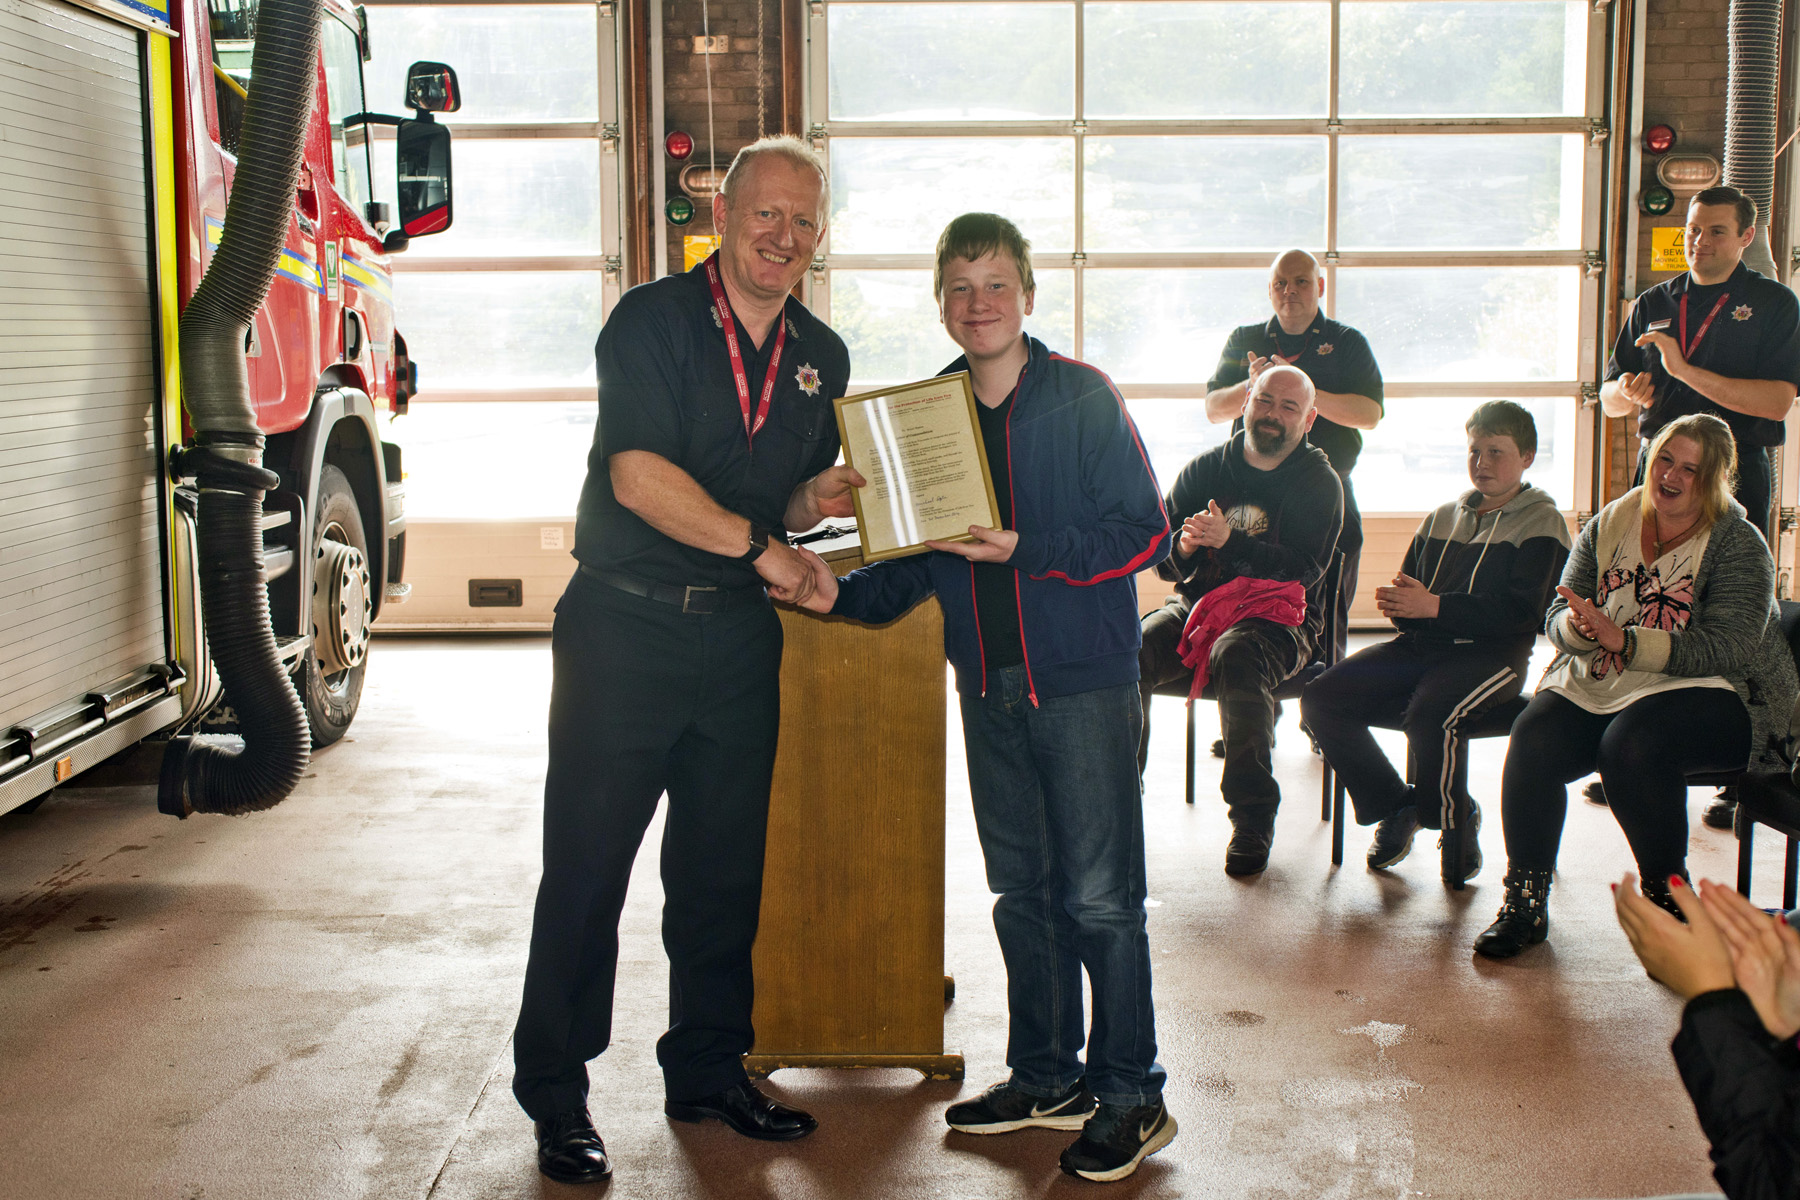 Recognition for Livingston boy's quick actions